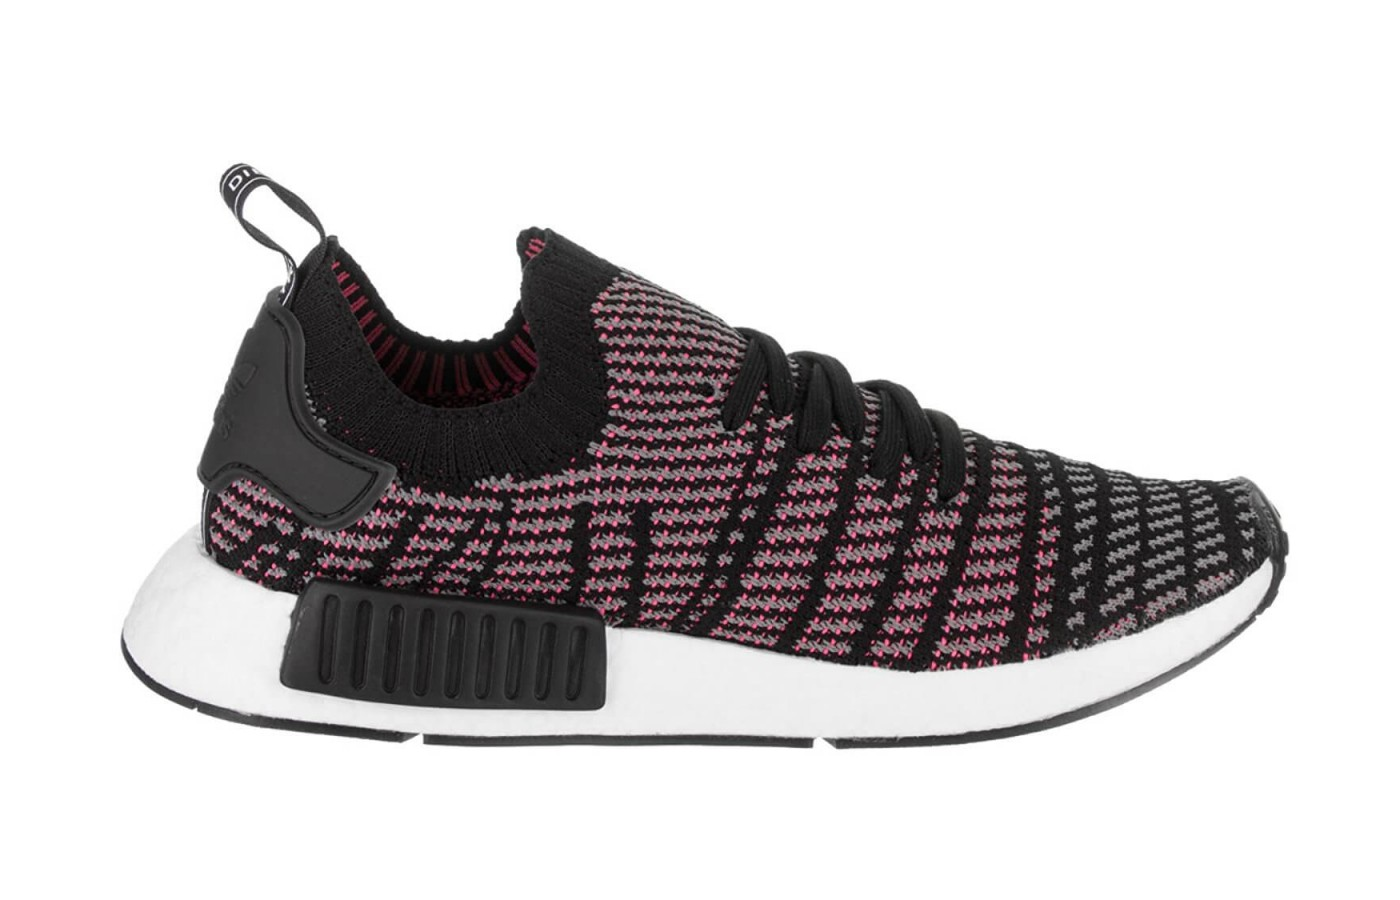 f477f171c682 ... The Adidas NMD R1 Stlt Primeknit features a Boost midsole ...